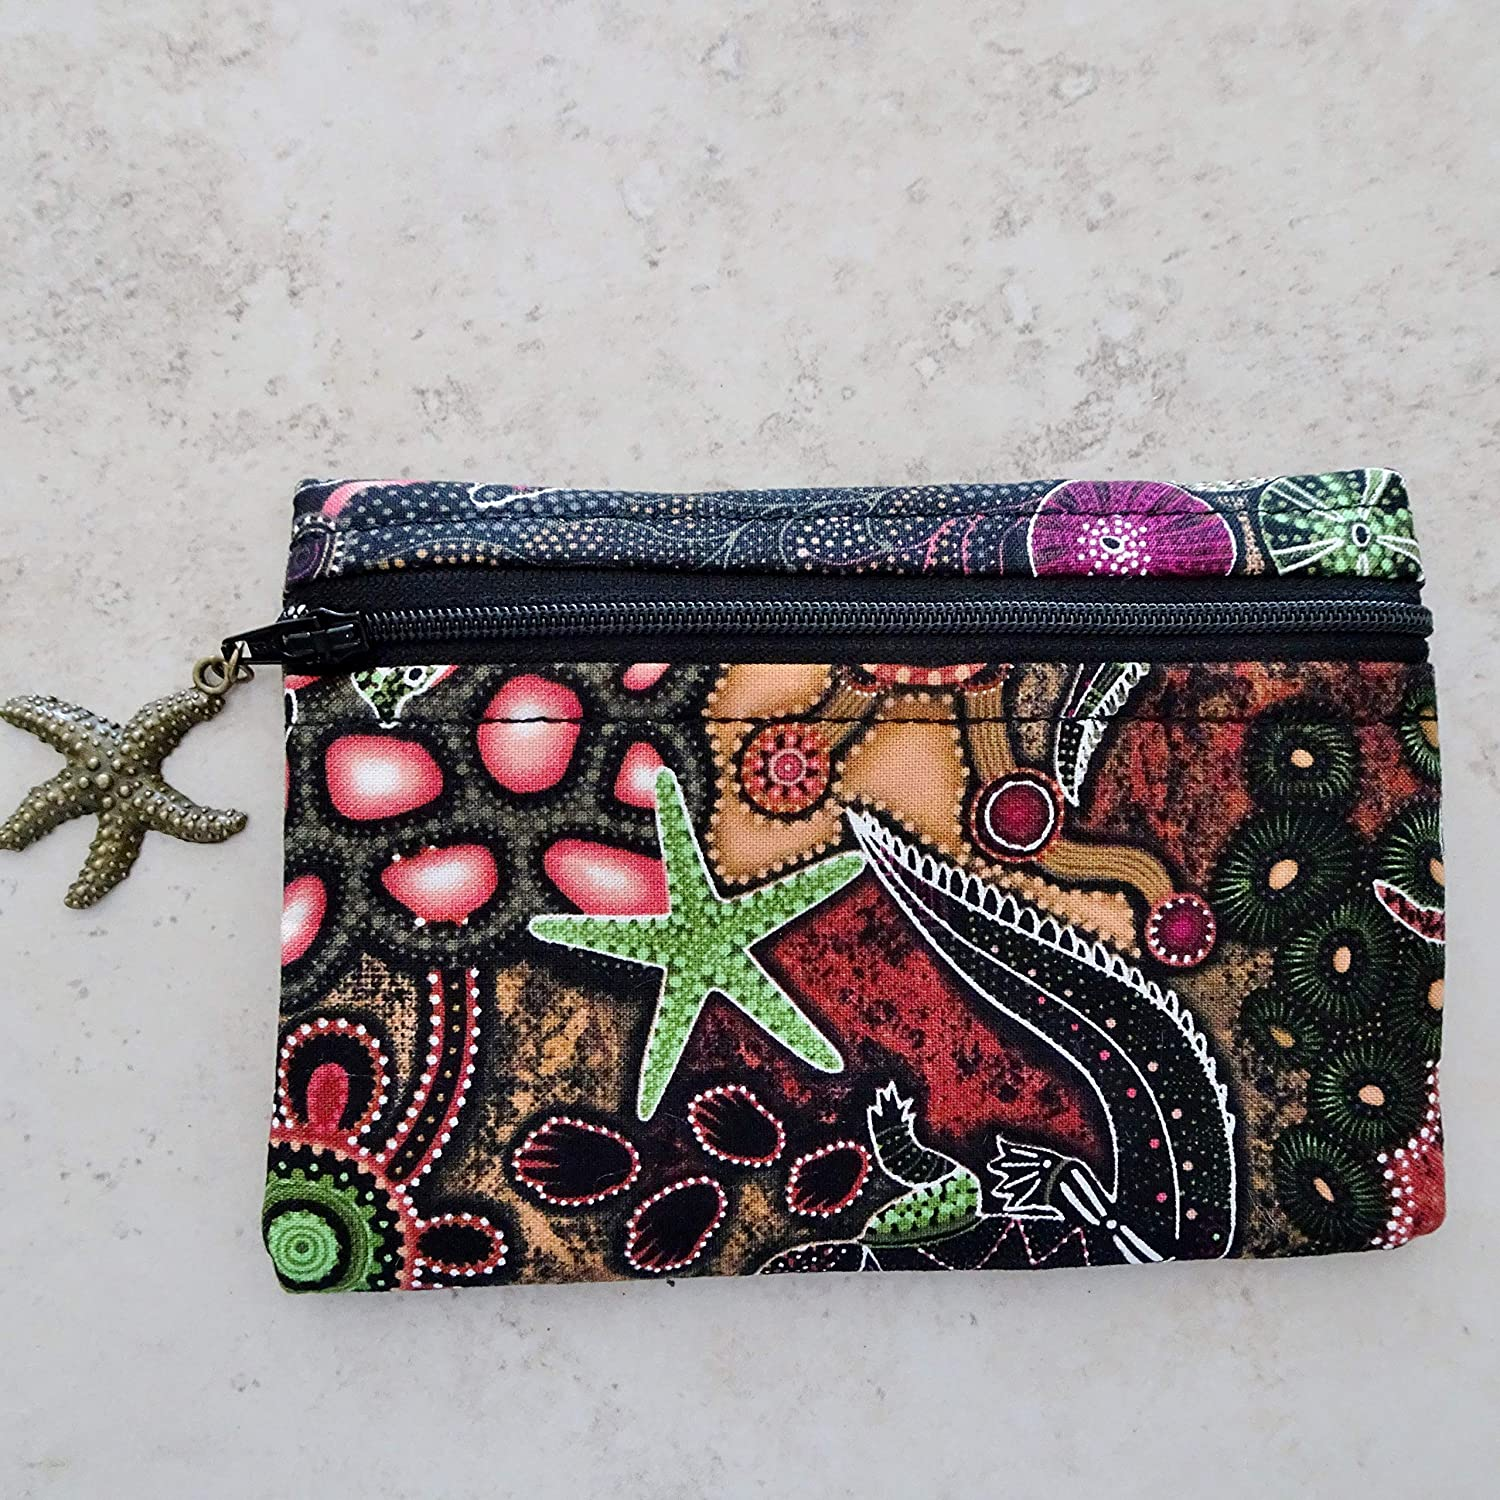 Amazon.com: Zippered Coin Purse - Fabric Pouch Bag ...